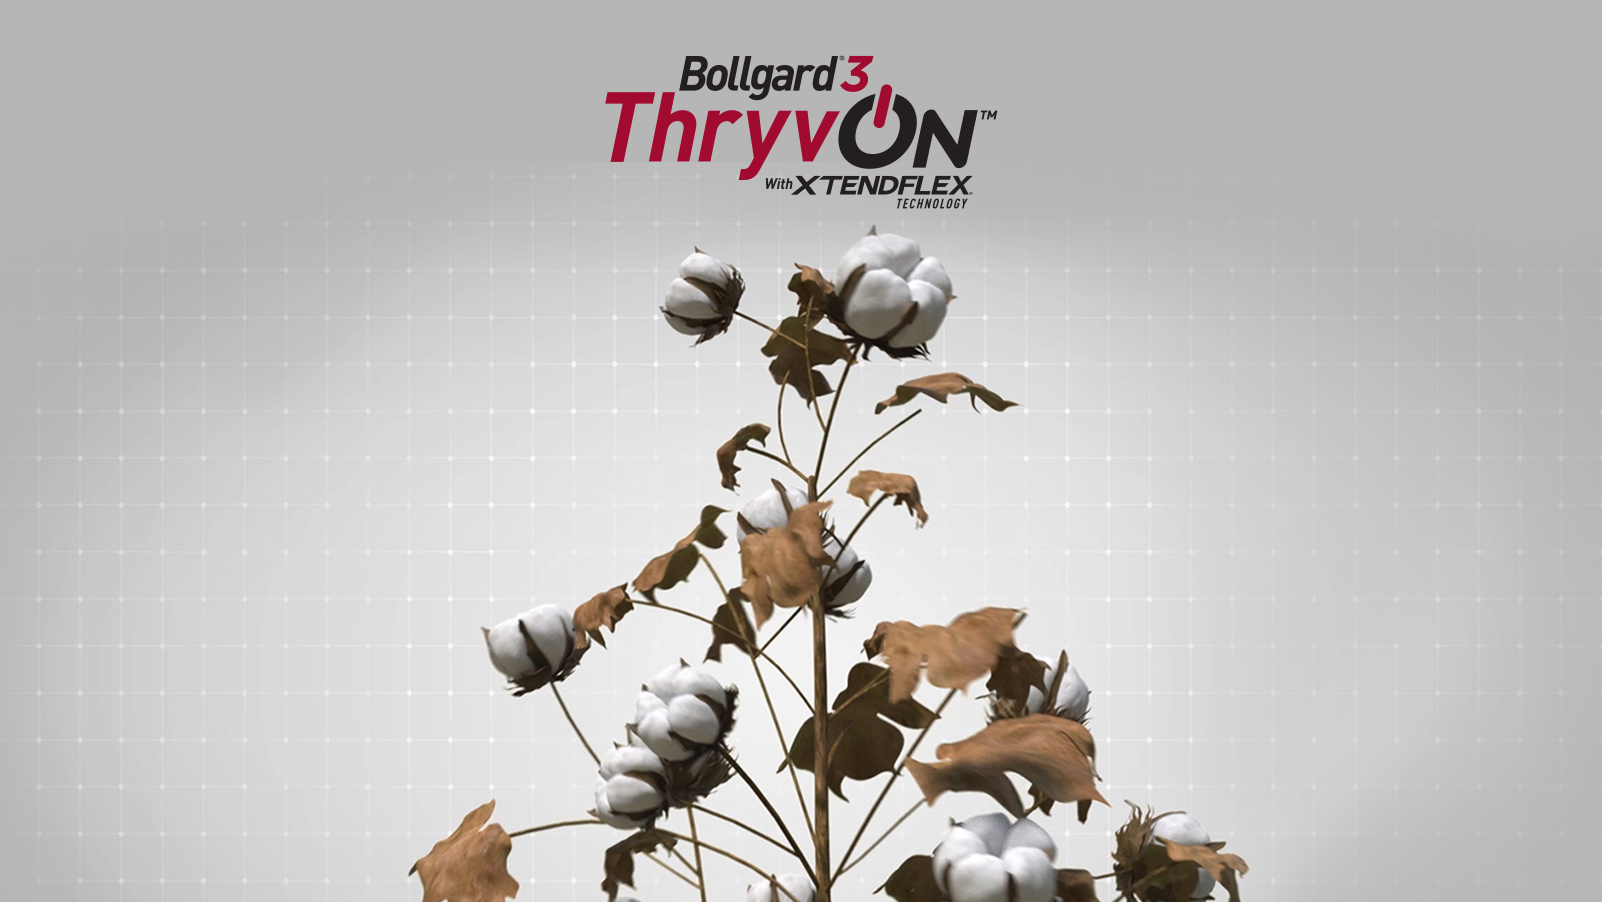 Bollgard® 3 ThryvOn™ Cotton With XtendFlex® Technology